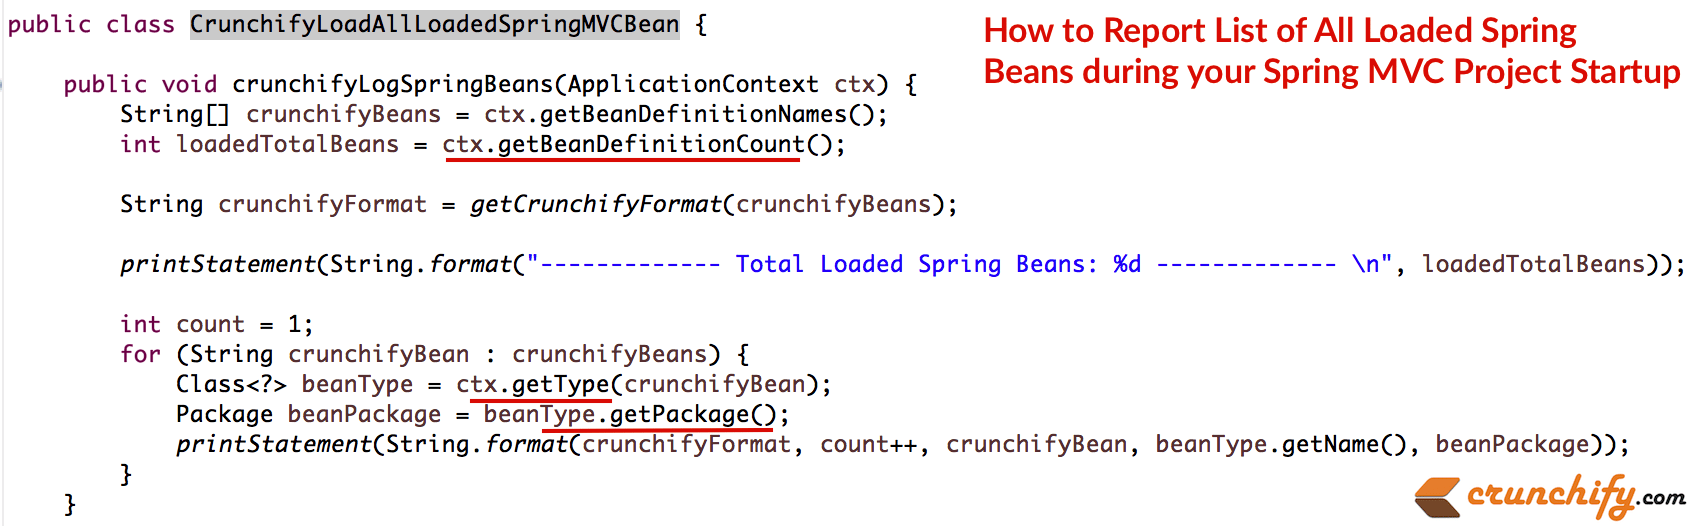 how-to-report-list-of-all-loaded-spring-beans-during-your-spring-mvc-project-startup